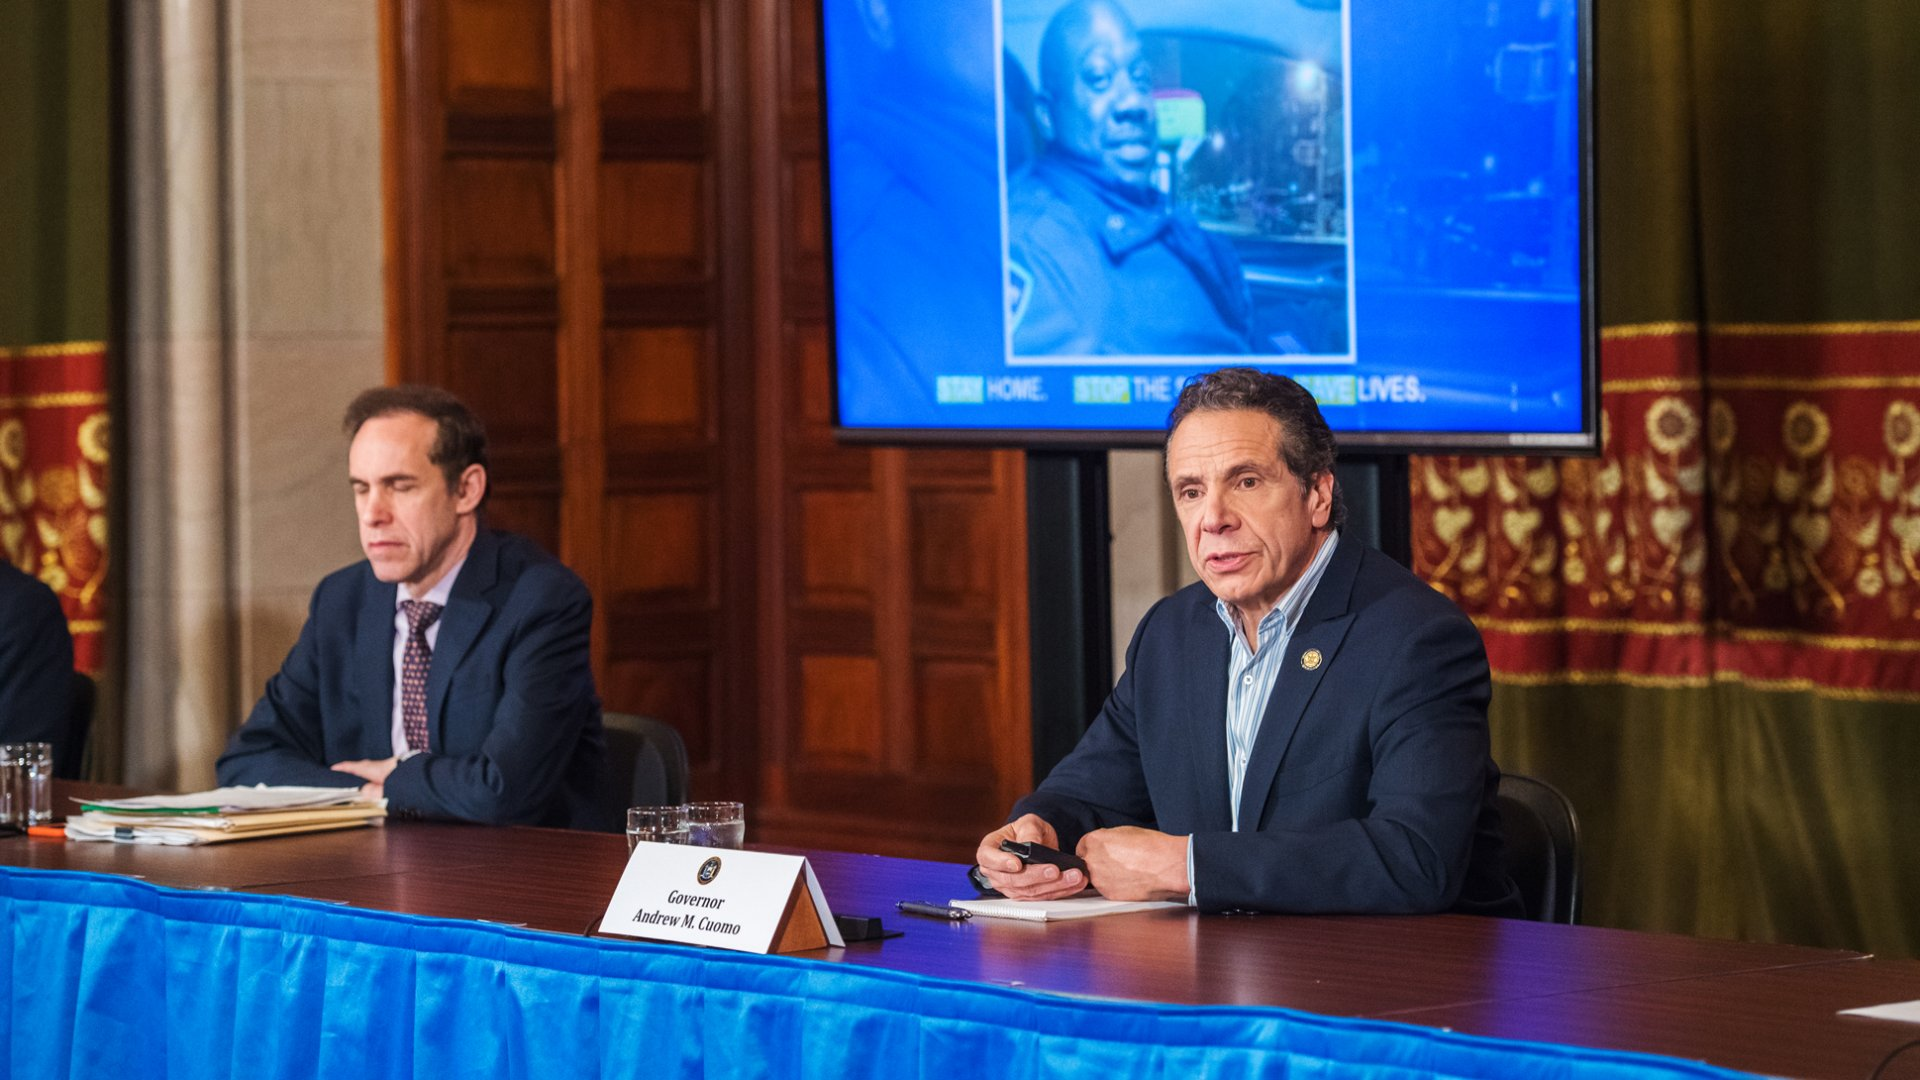 Governor Andrew Cuomo delivering daily press briefing on coronavirus in Albany, NY.